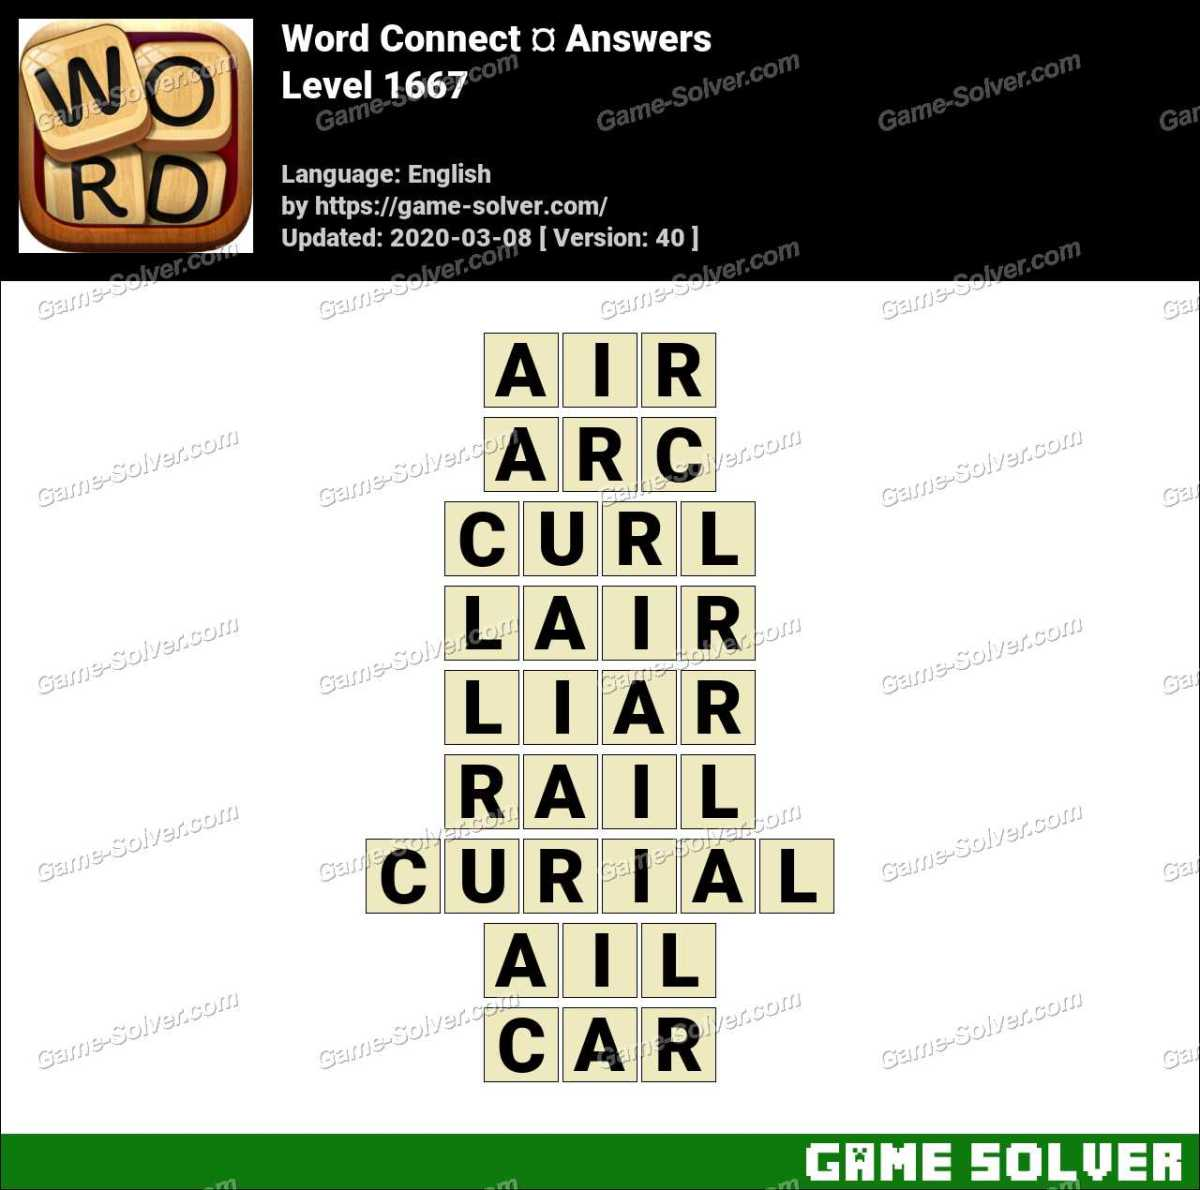 Word Connect Level 1667 Answers